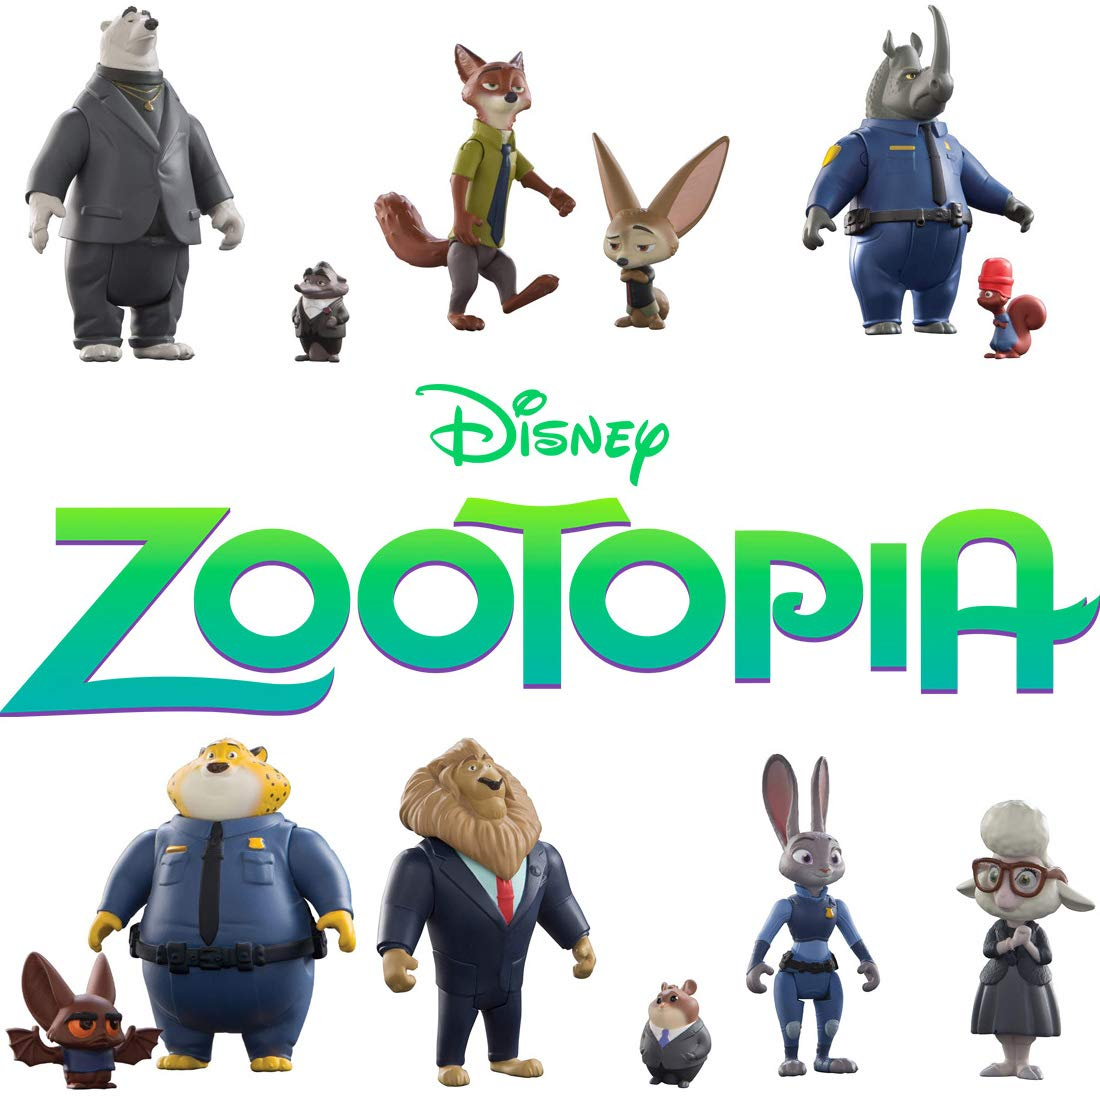 Zootropolis - Pack 2 Figuras de Judy Hopps & May Bellwether (Bizak 30690901): Amazon.es: Juguetes y juegos